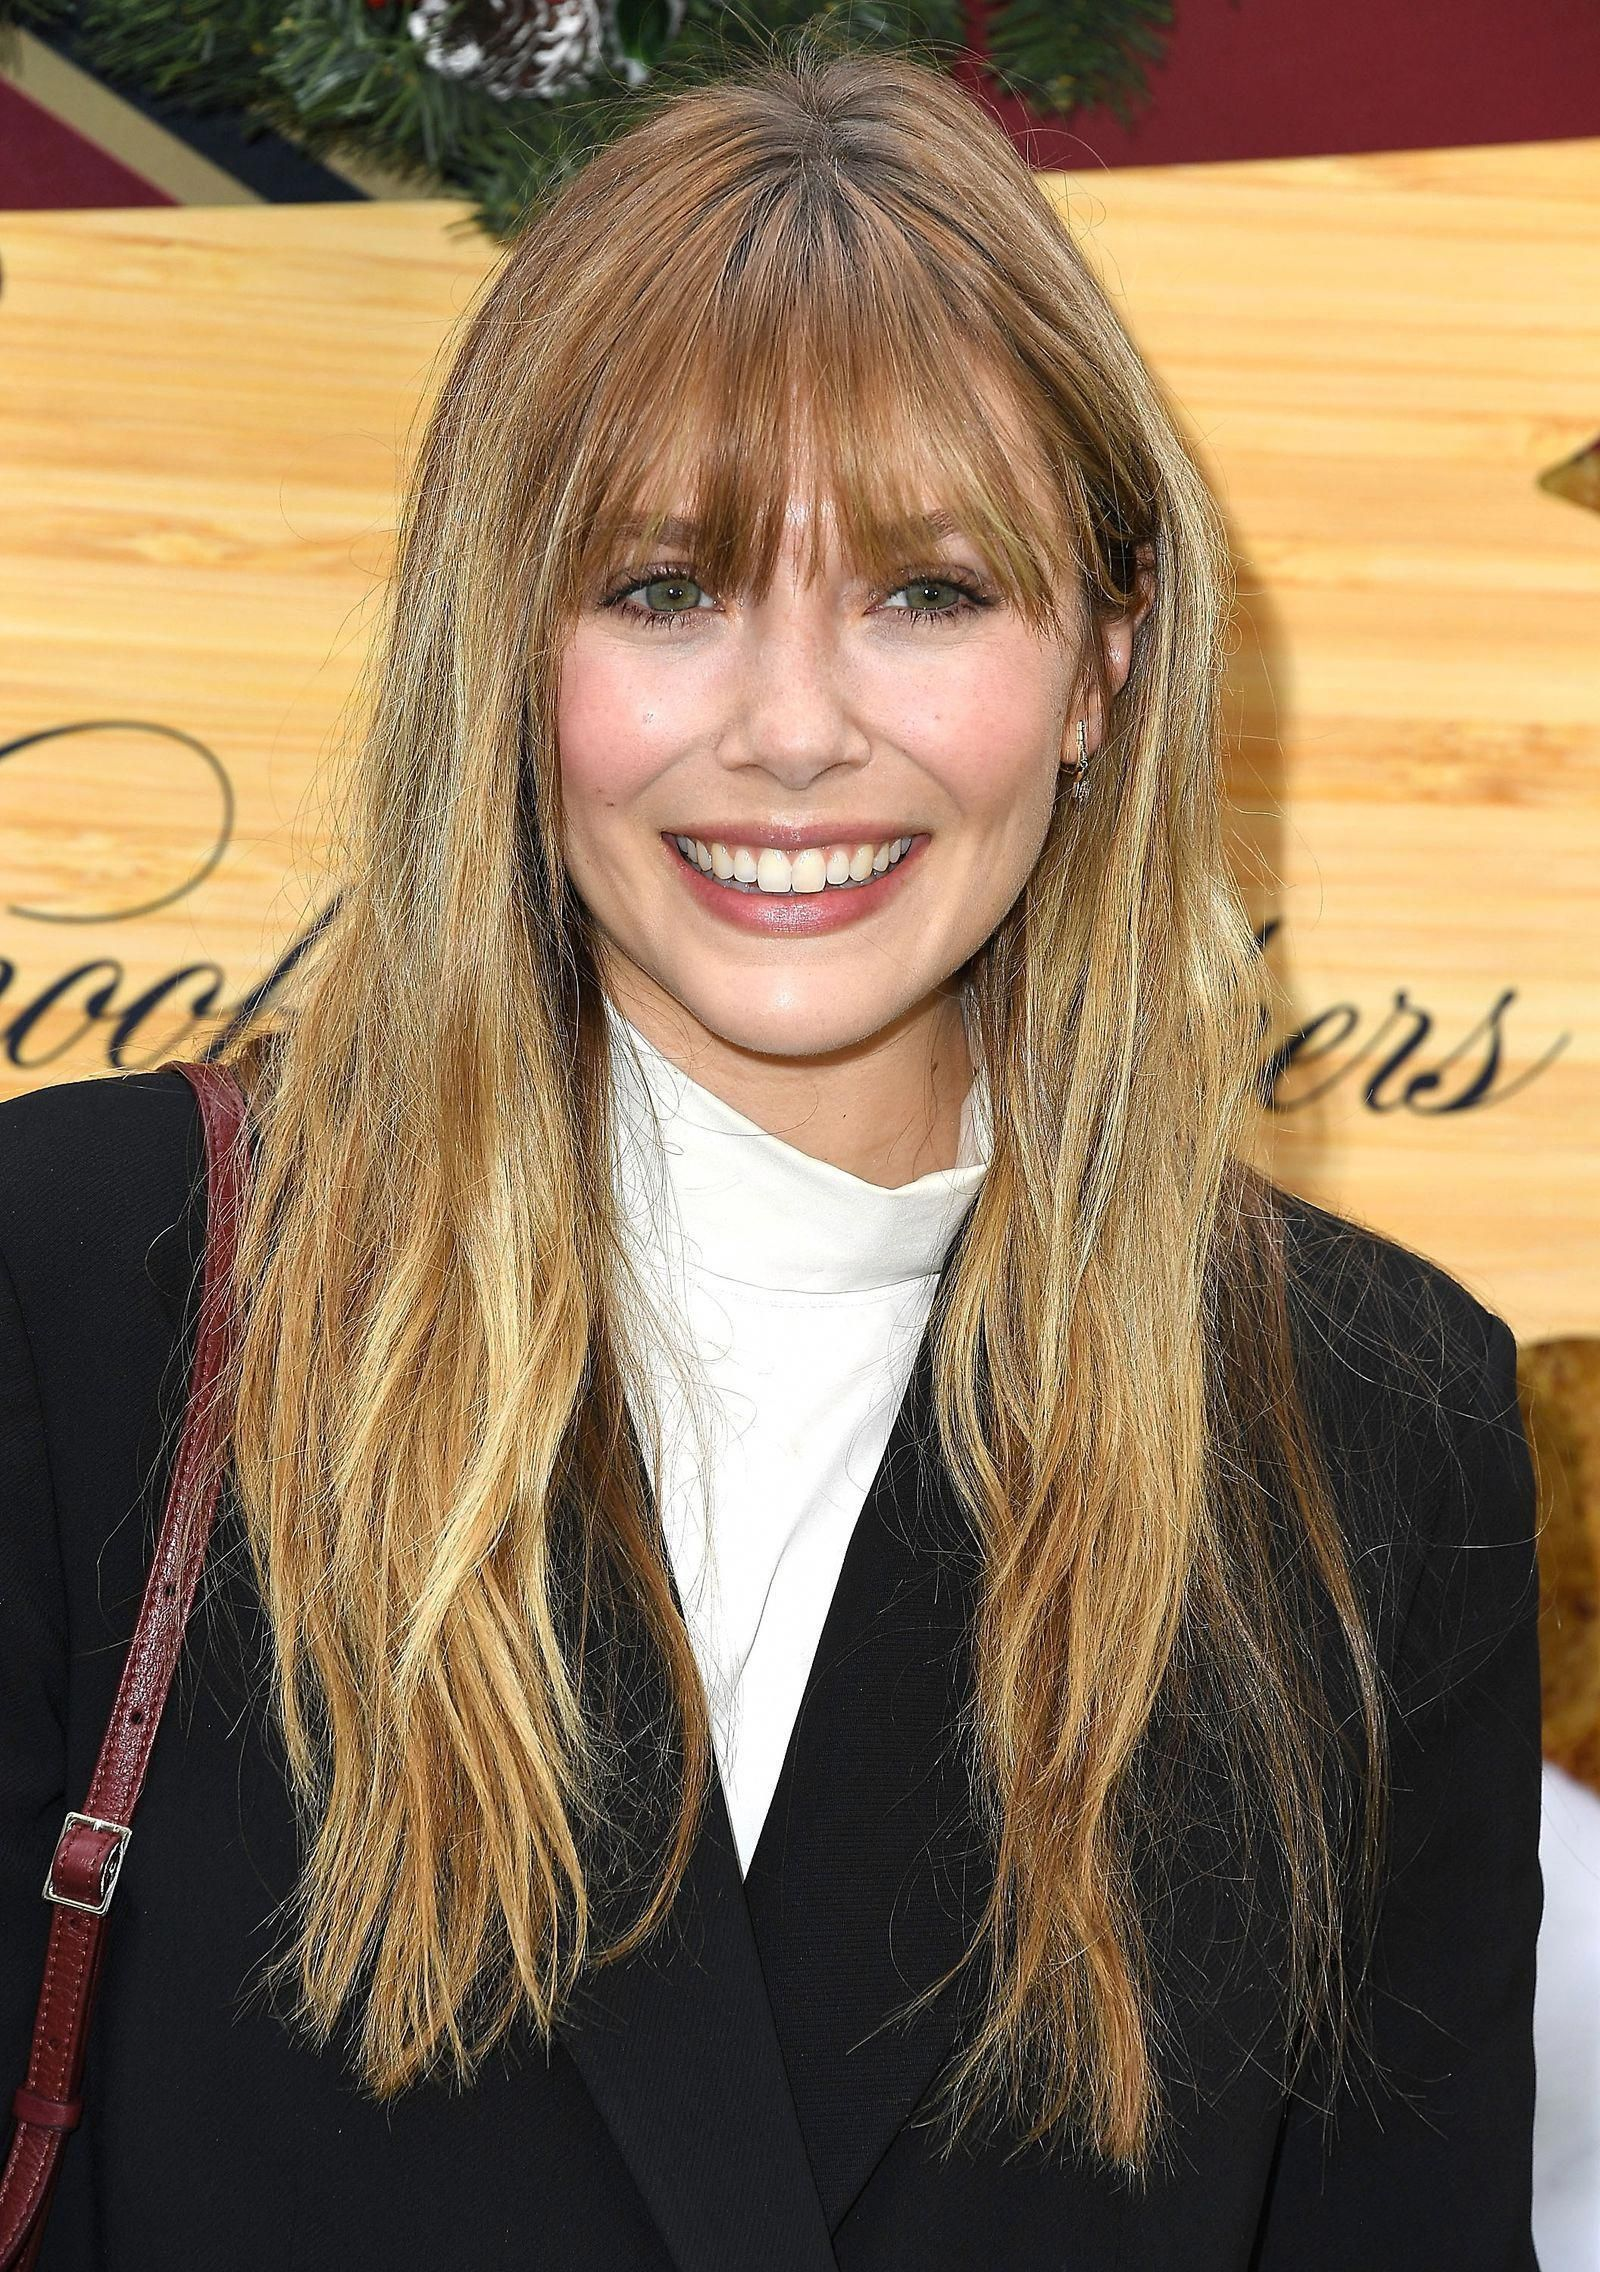 17 Wispy Bangs Styles From Celebs Whose Bangs Are Always Too Good I Am Co Blonde Hair With Bangs Long Hair With Bangs Long Hair Styles